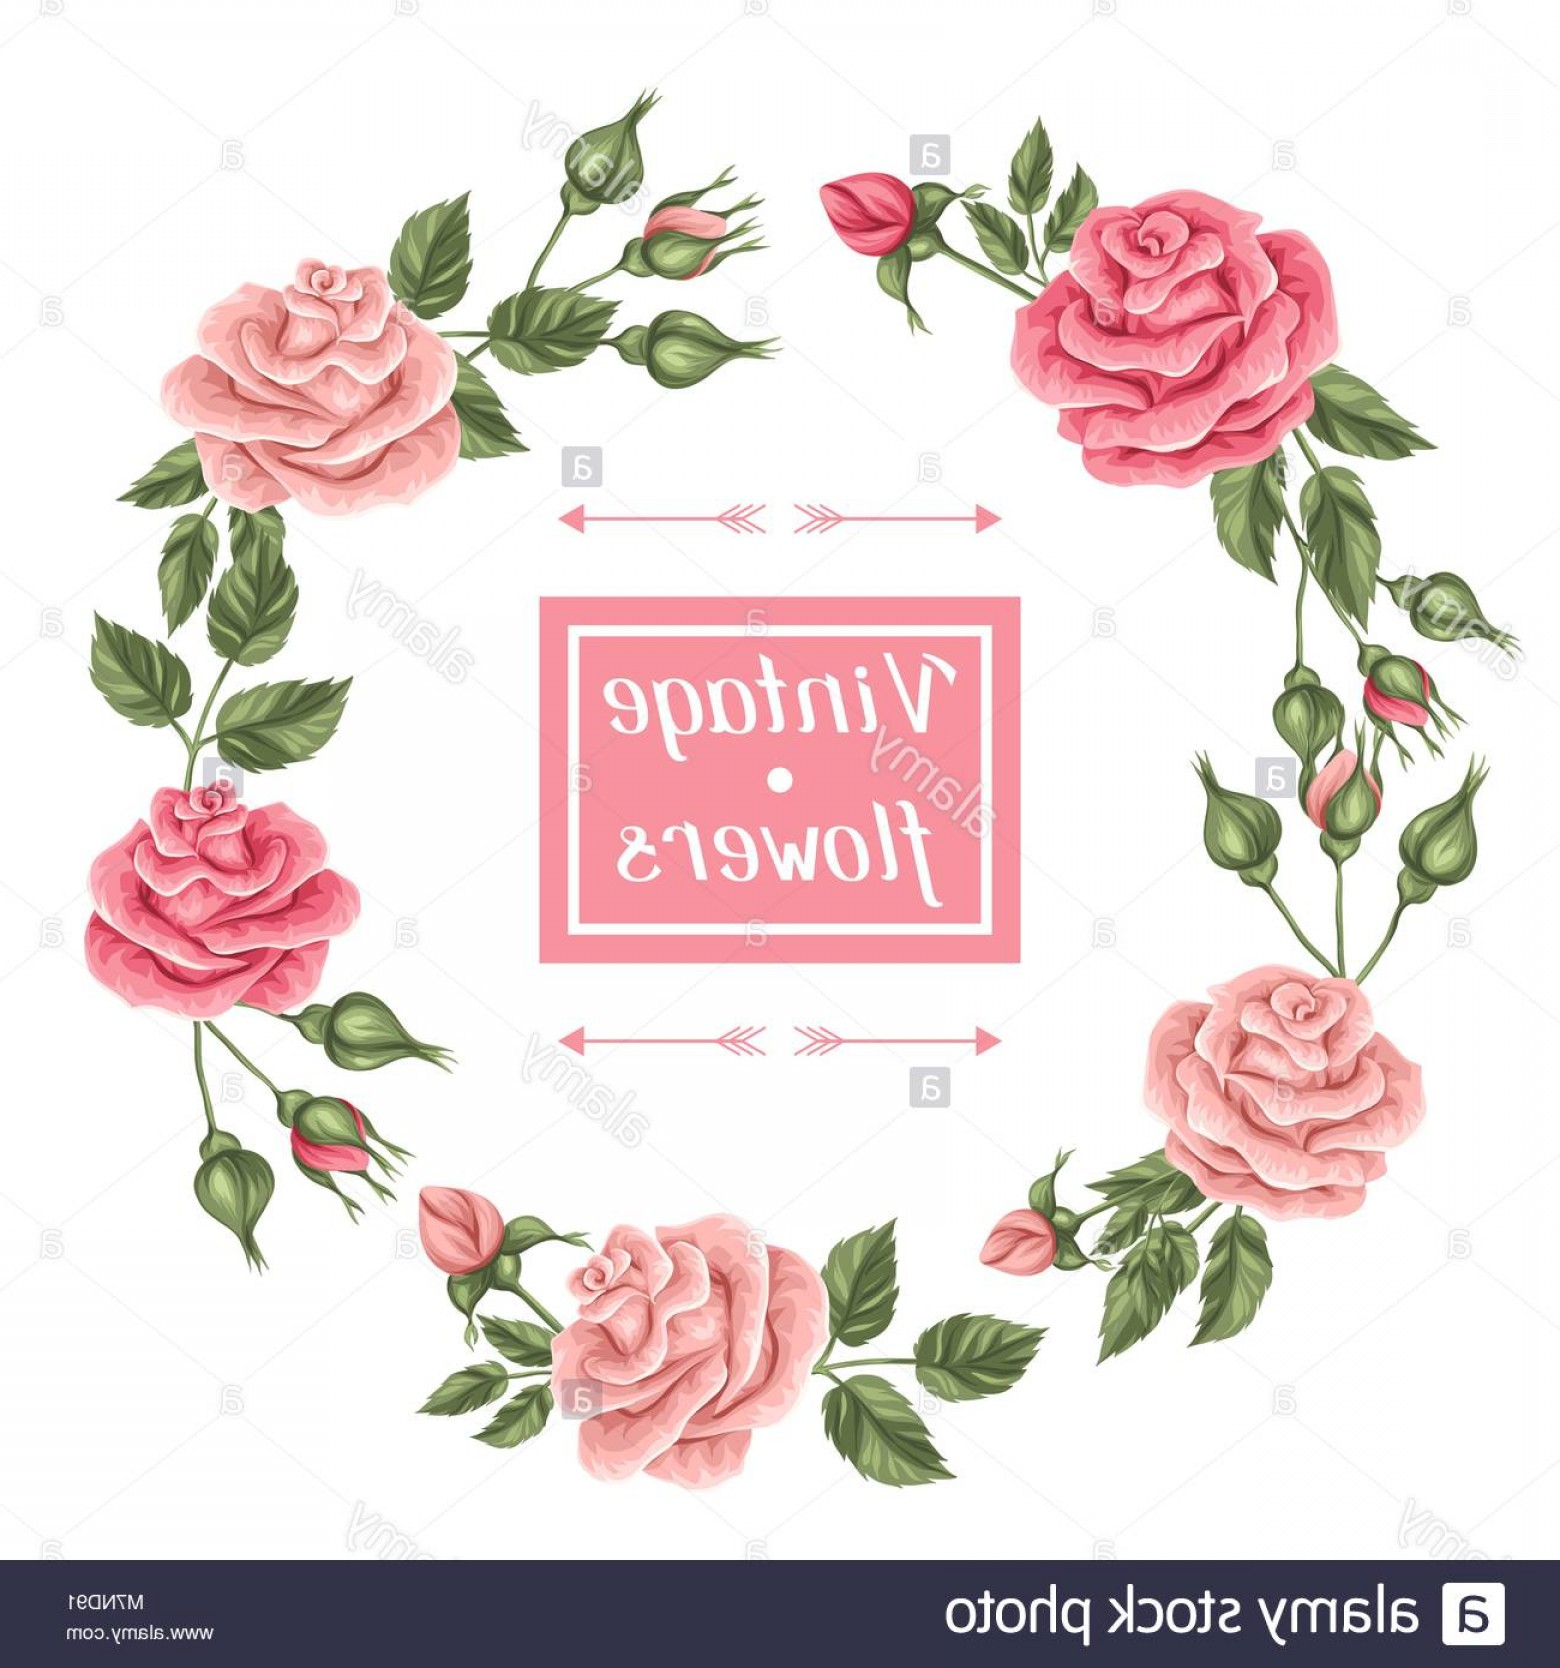 Romantic Vintage Flowers Vector: Stock Photo Frame With Vintage Roses Decorative Retro Flowers Image For Wedding